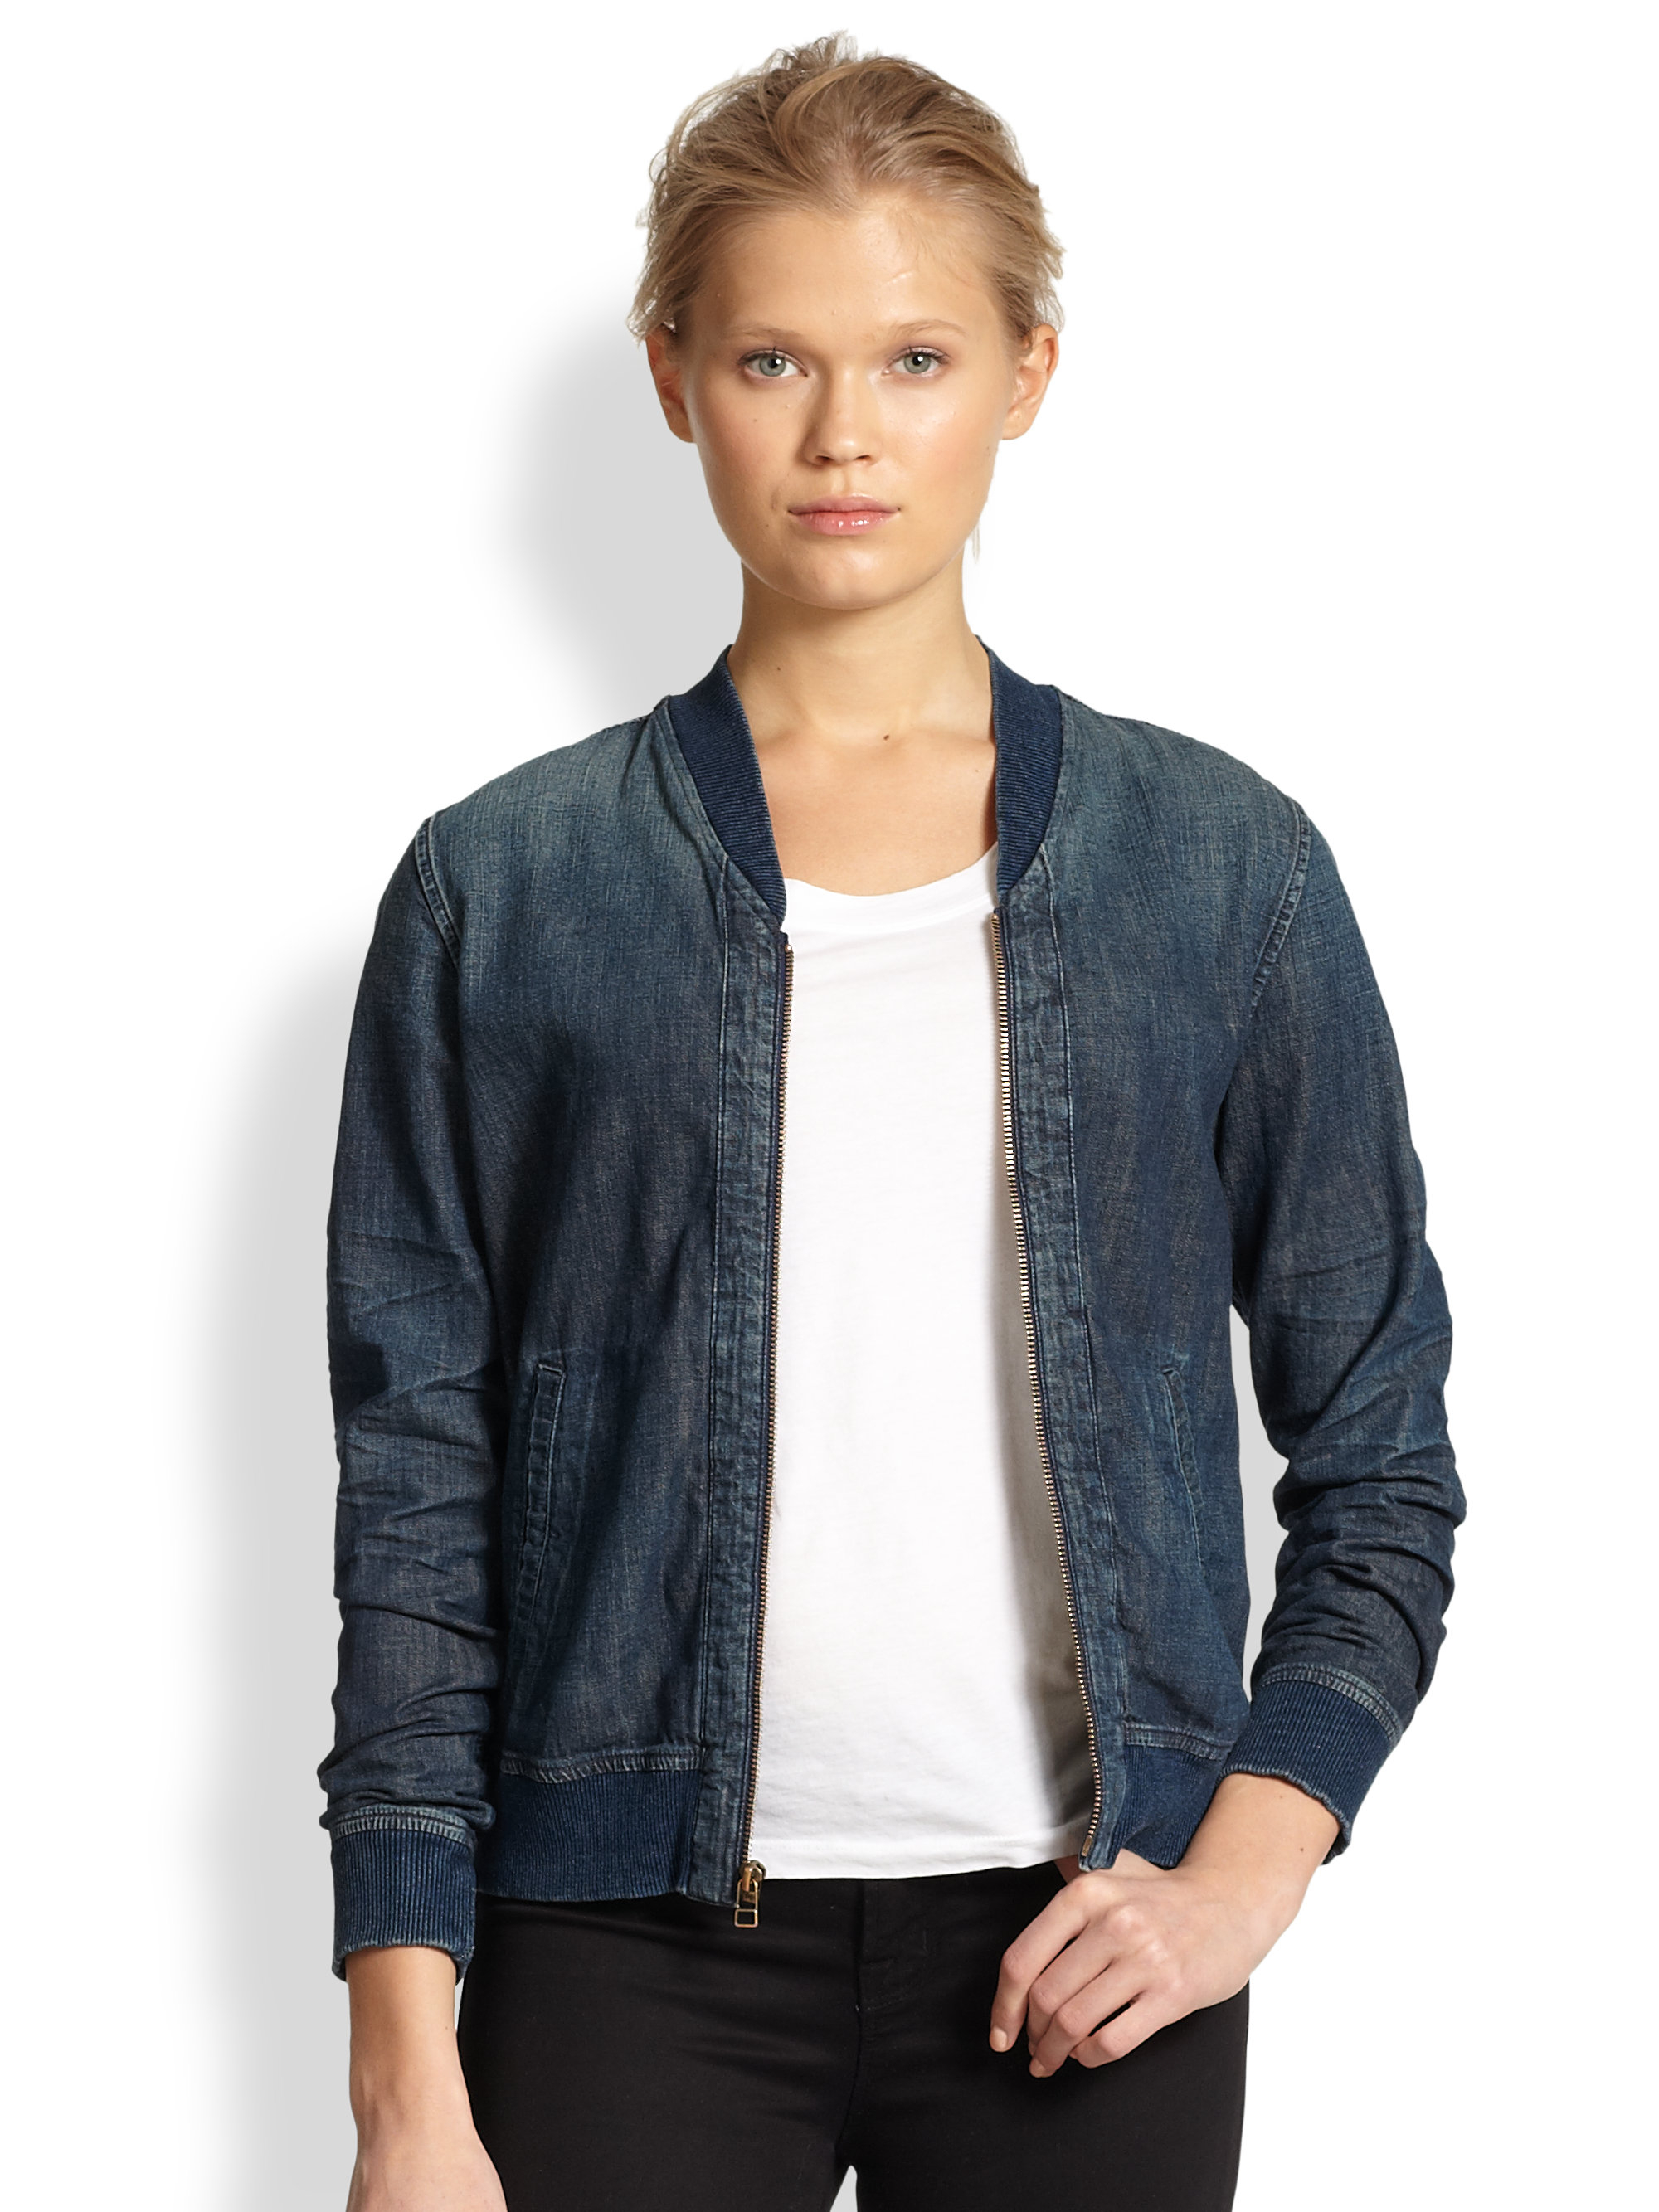 Bomber jacket denim – Modern fashion jacket photo blog